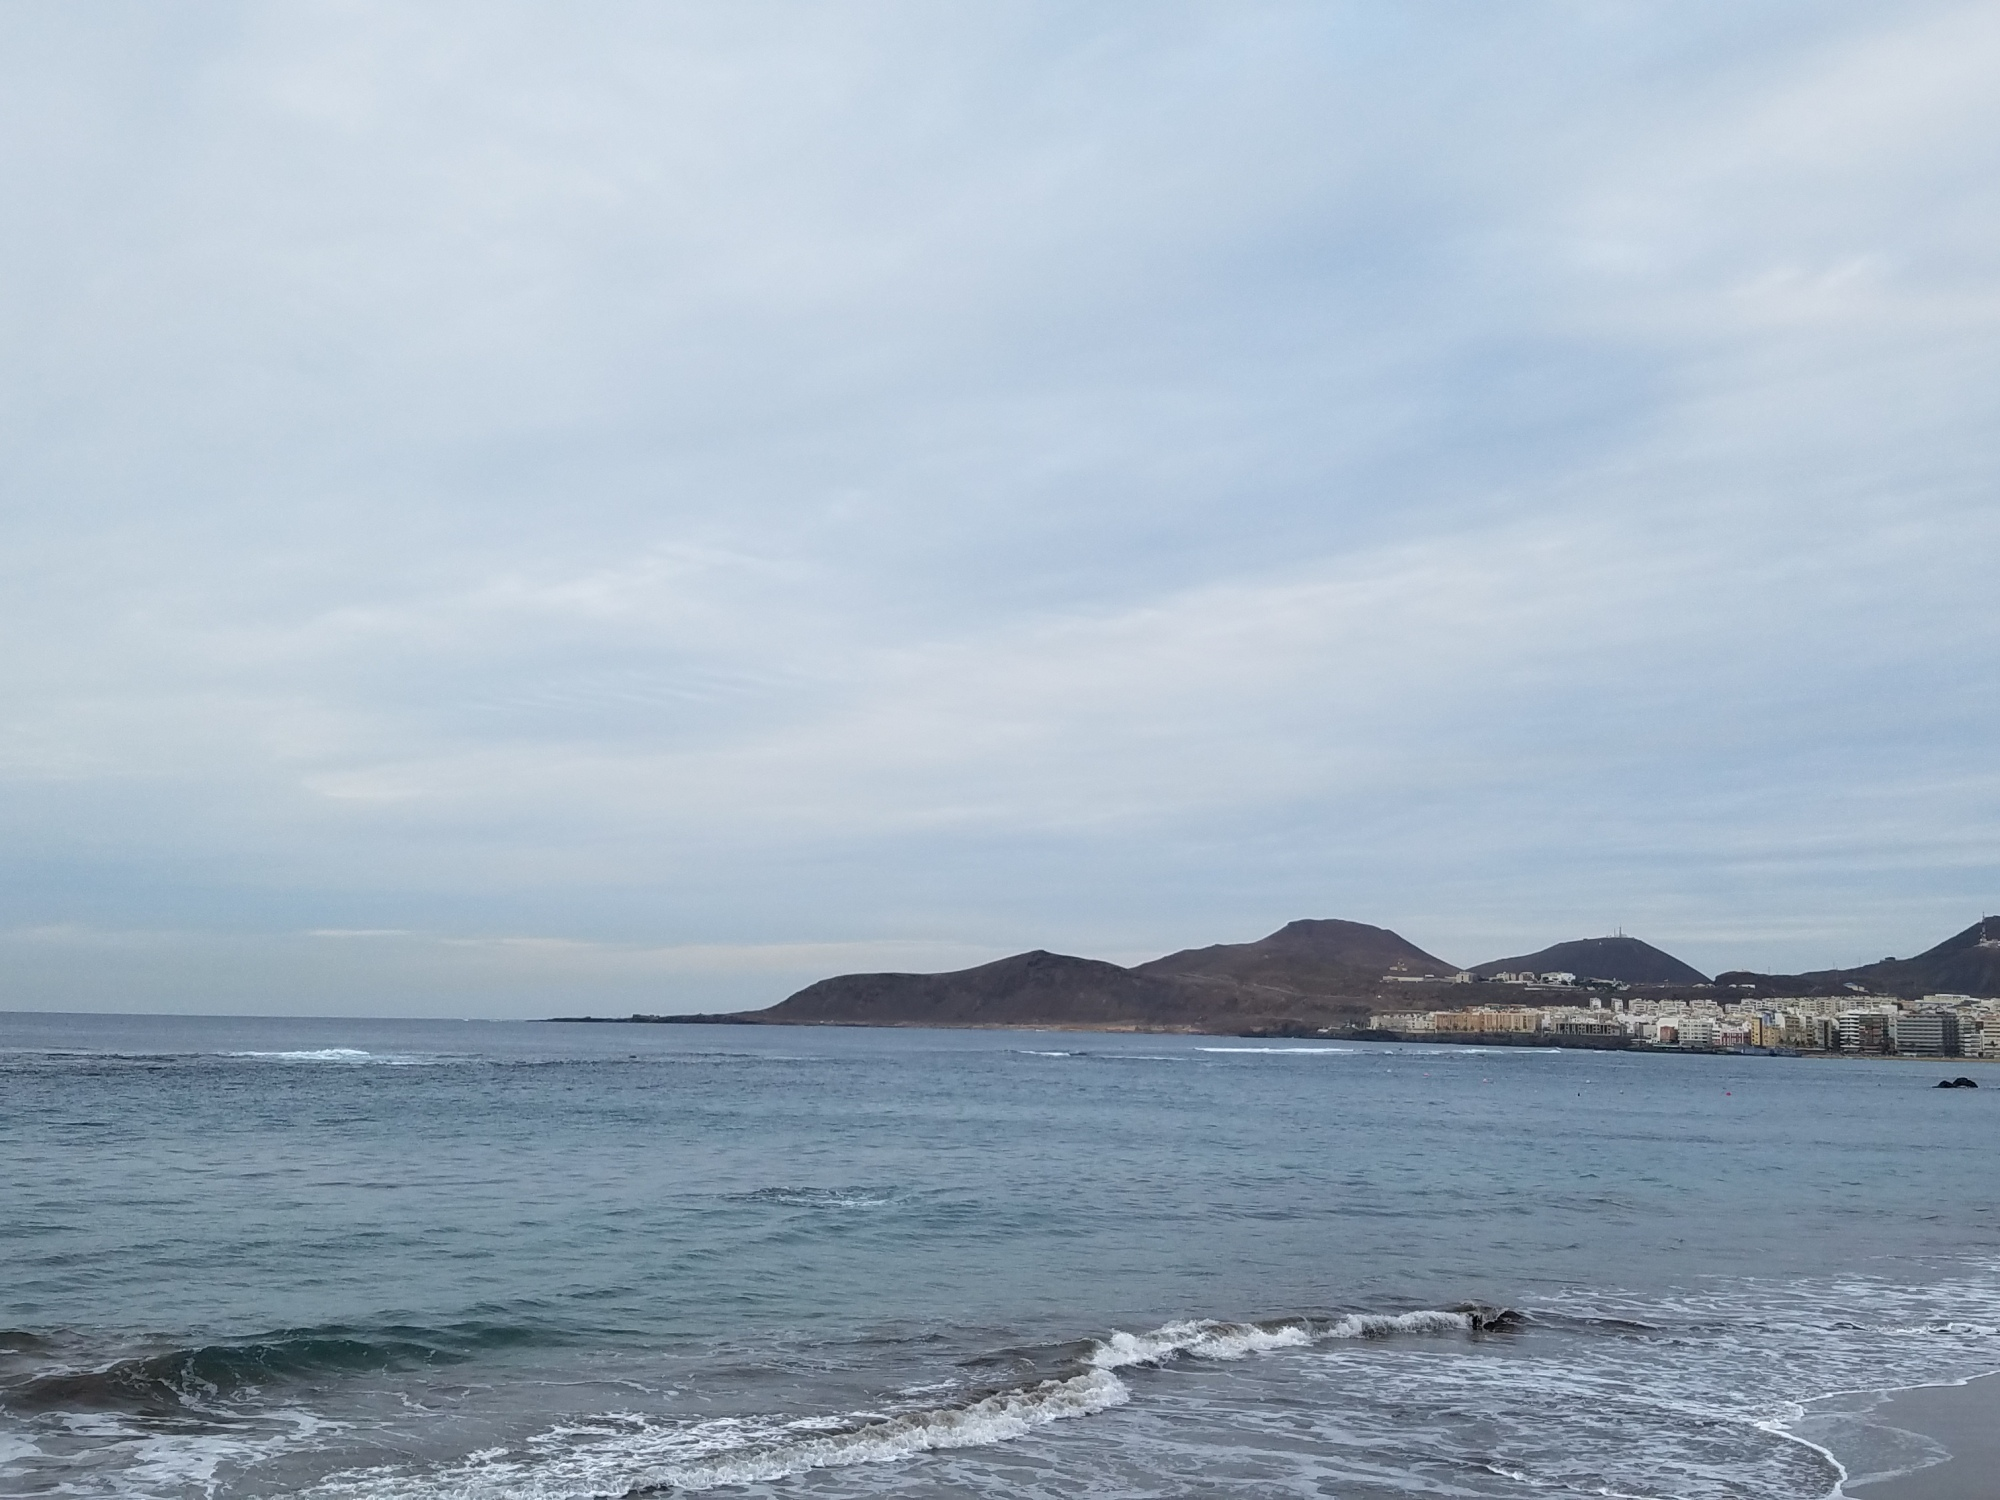 canary islands travel tip skip las palmas gran canaria playa de las canteras